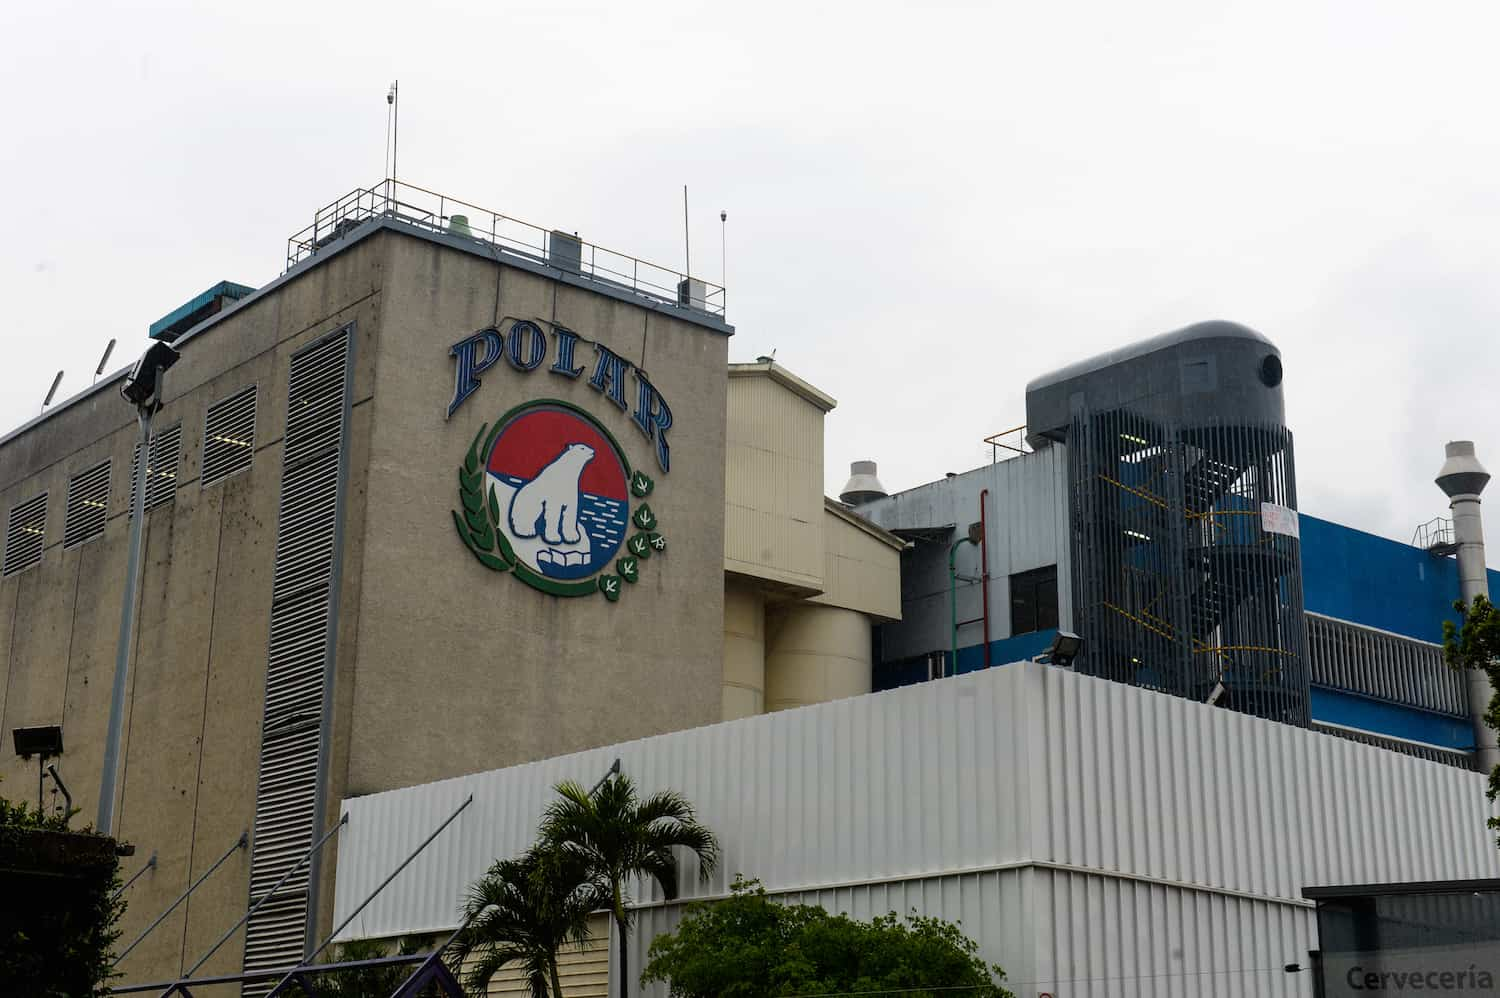 Polar brewery in Venezuela